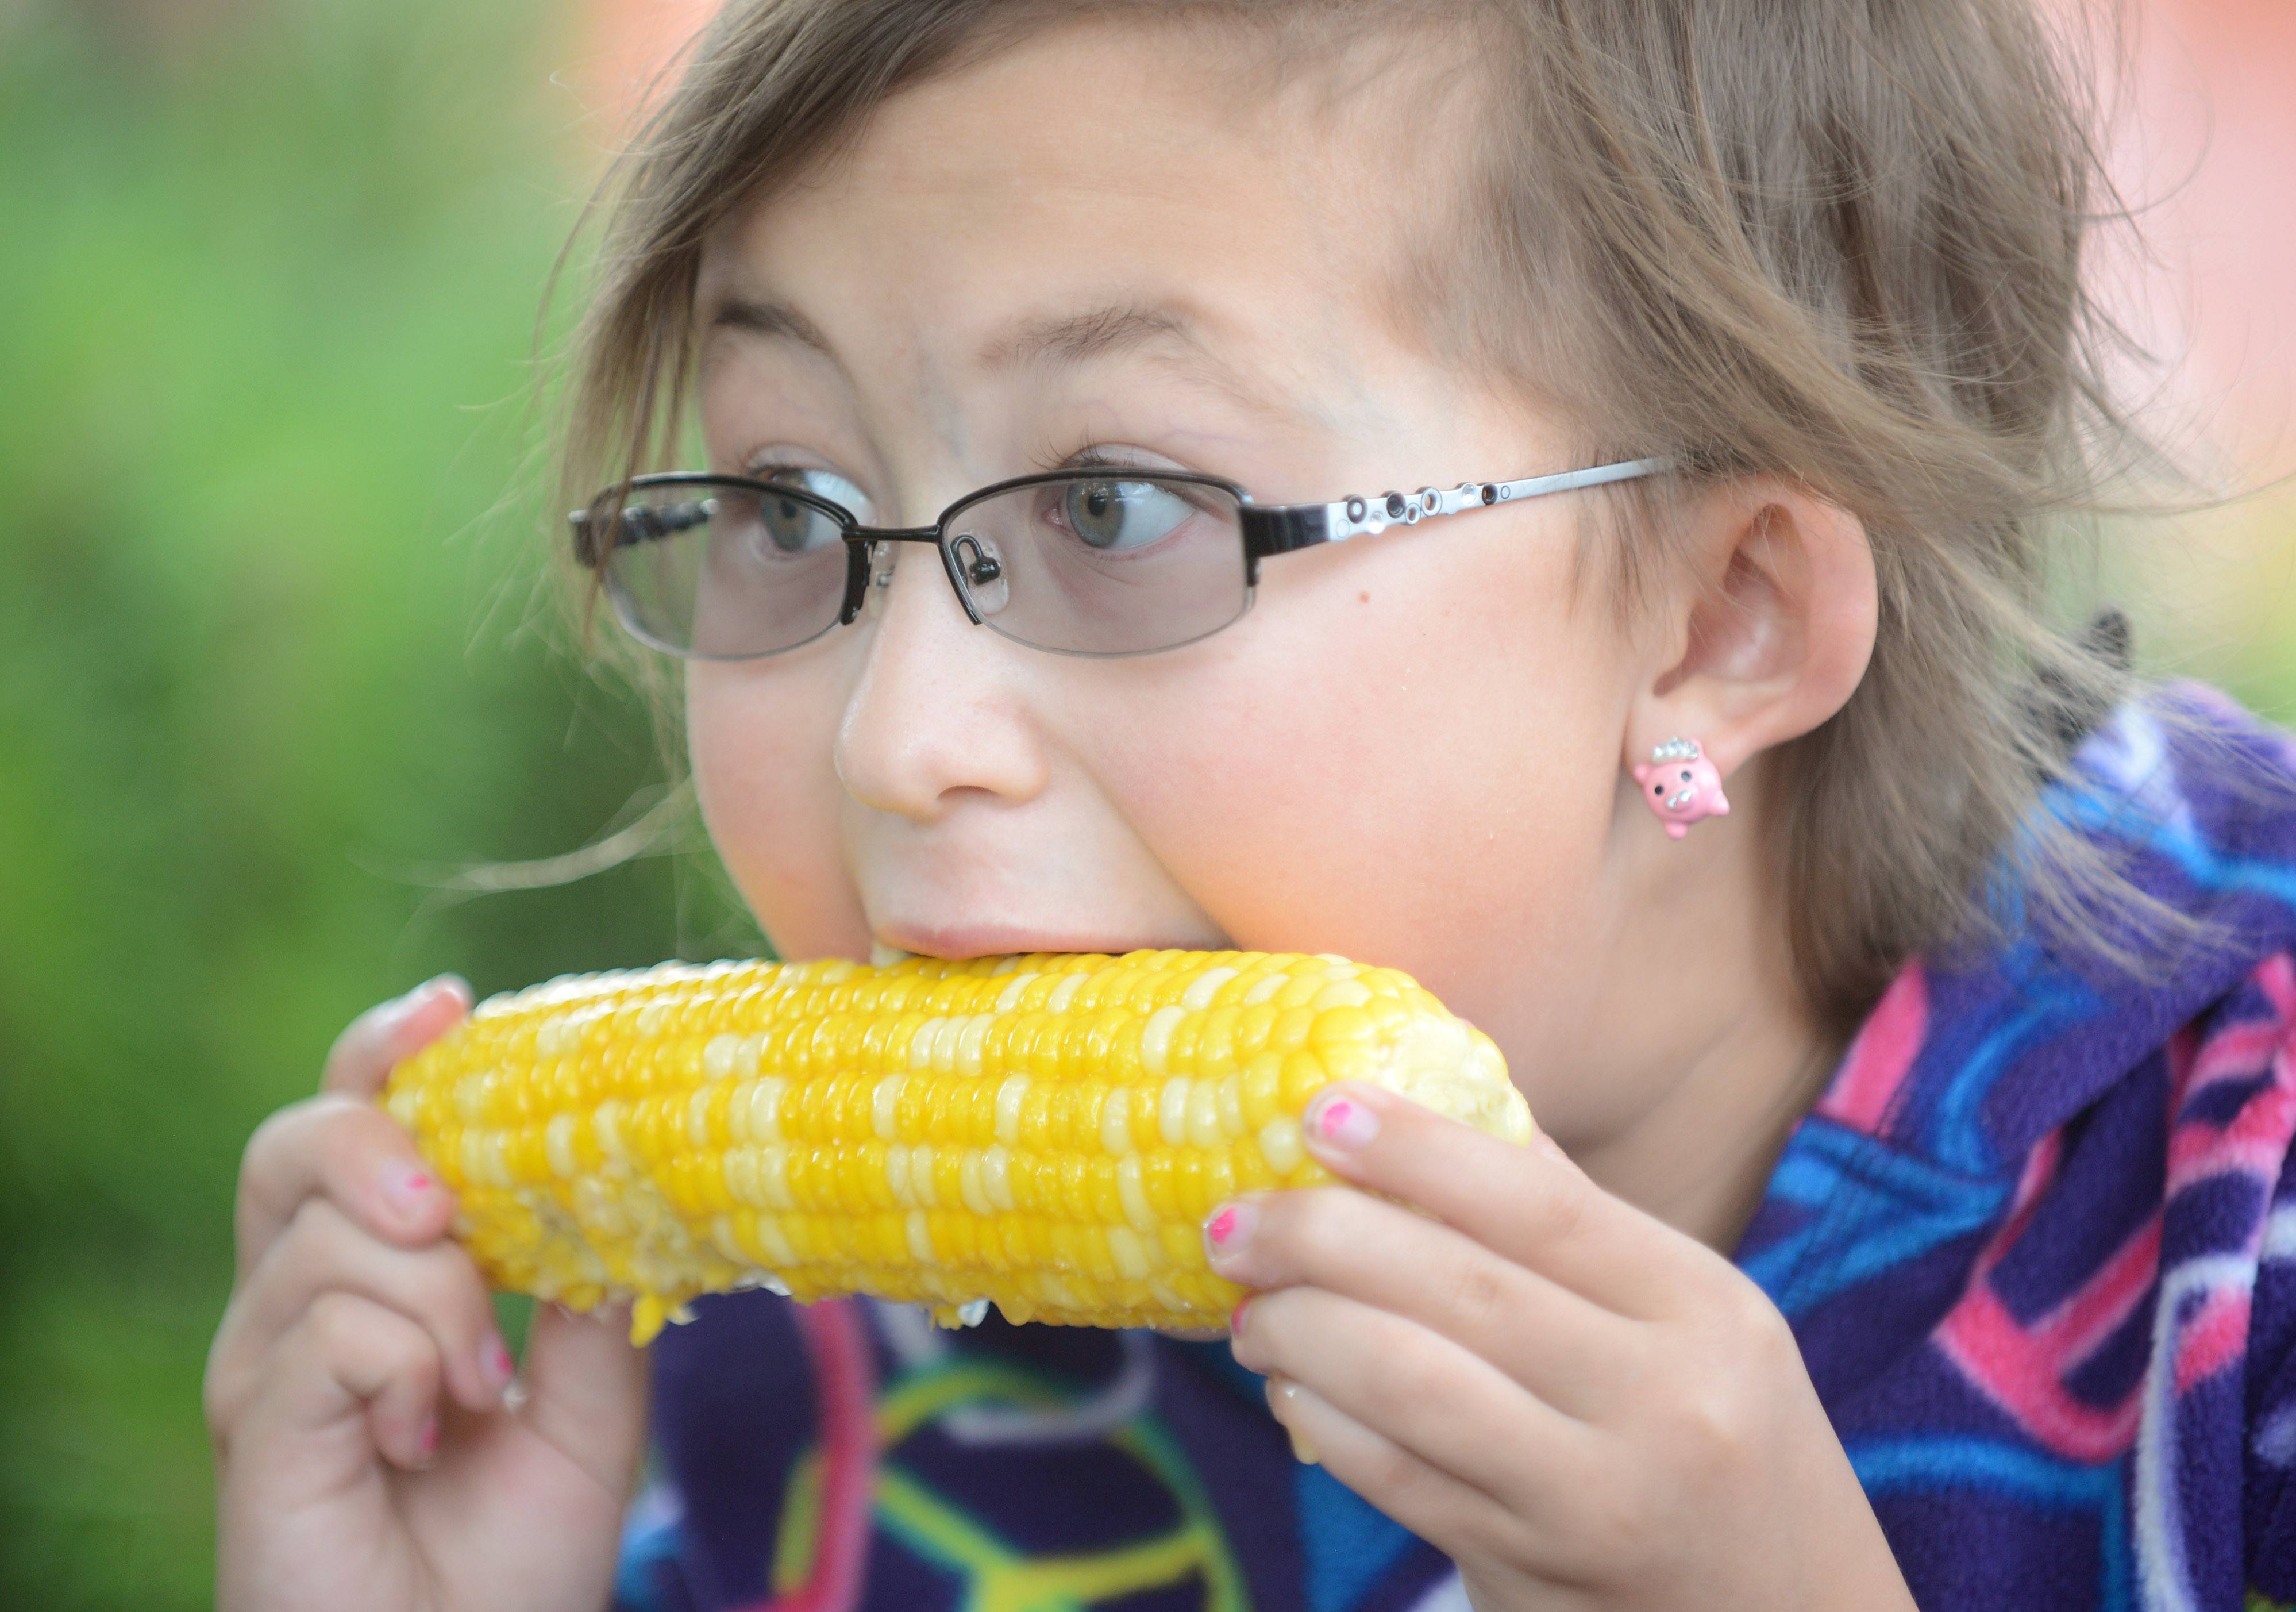 Caitlyn Grobe, 9, of Sugar Grove, chows down on an ear of corn at the Sugar Grove Corn Boil on Friday night. She has been coming every year since she was born.